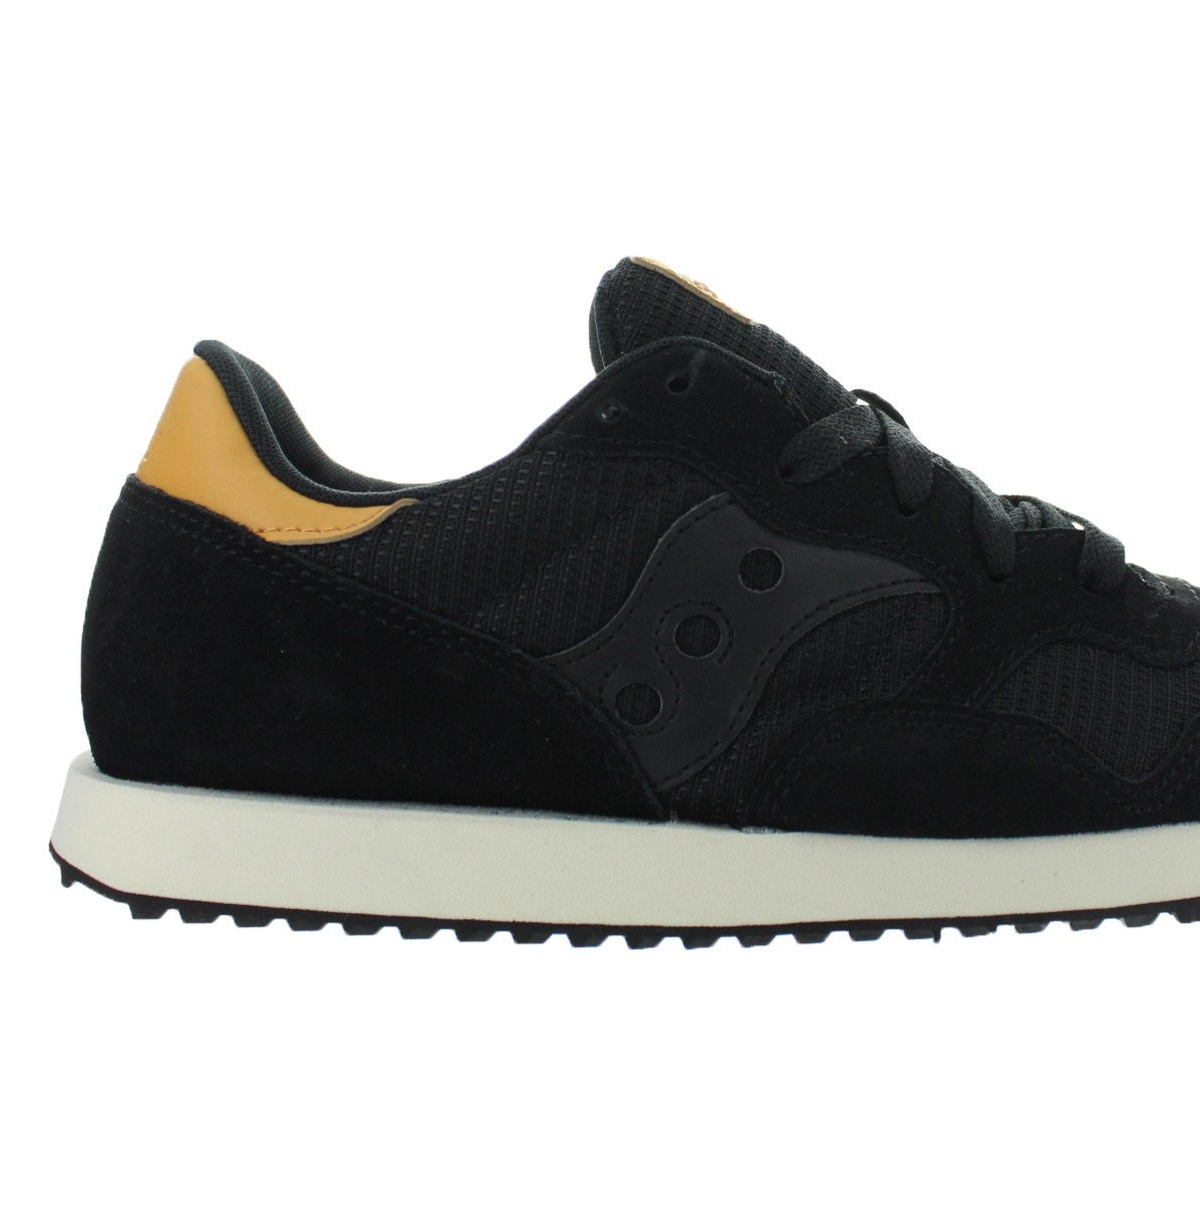 Click here to buy Mens Saucony DXN Trainer Black Tan White S70124-50.